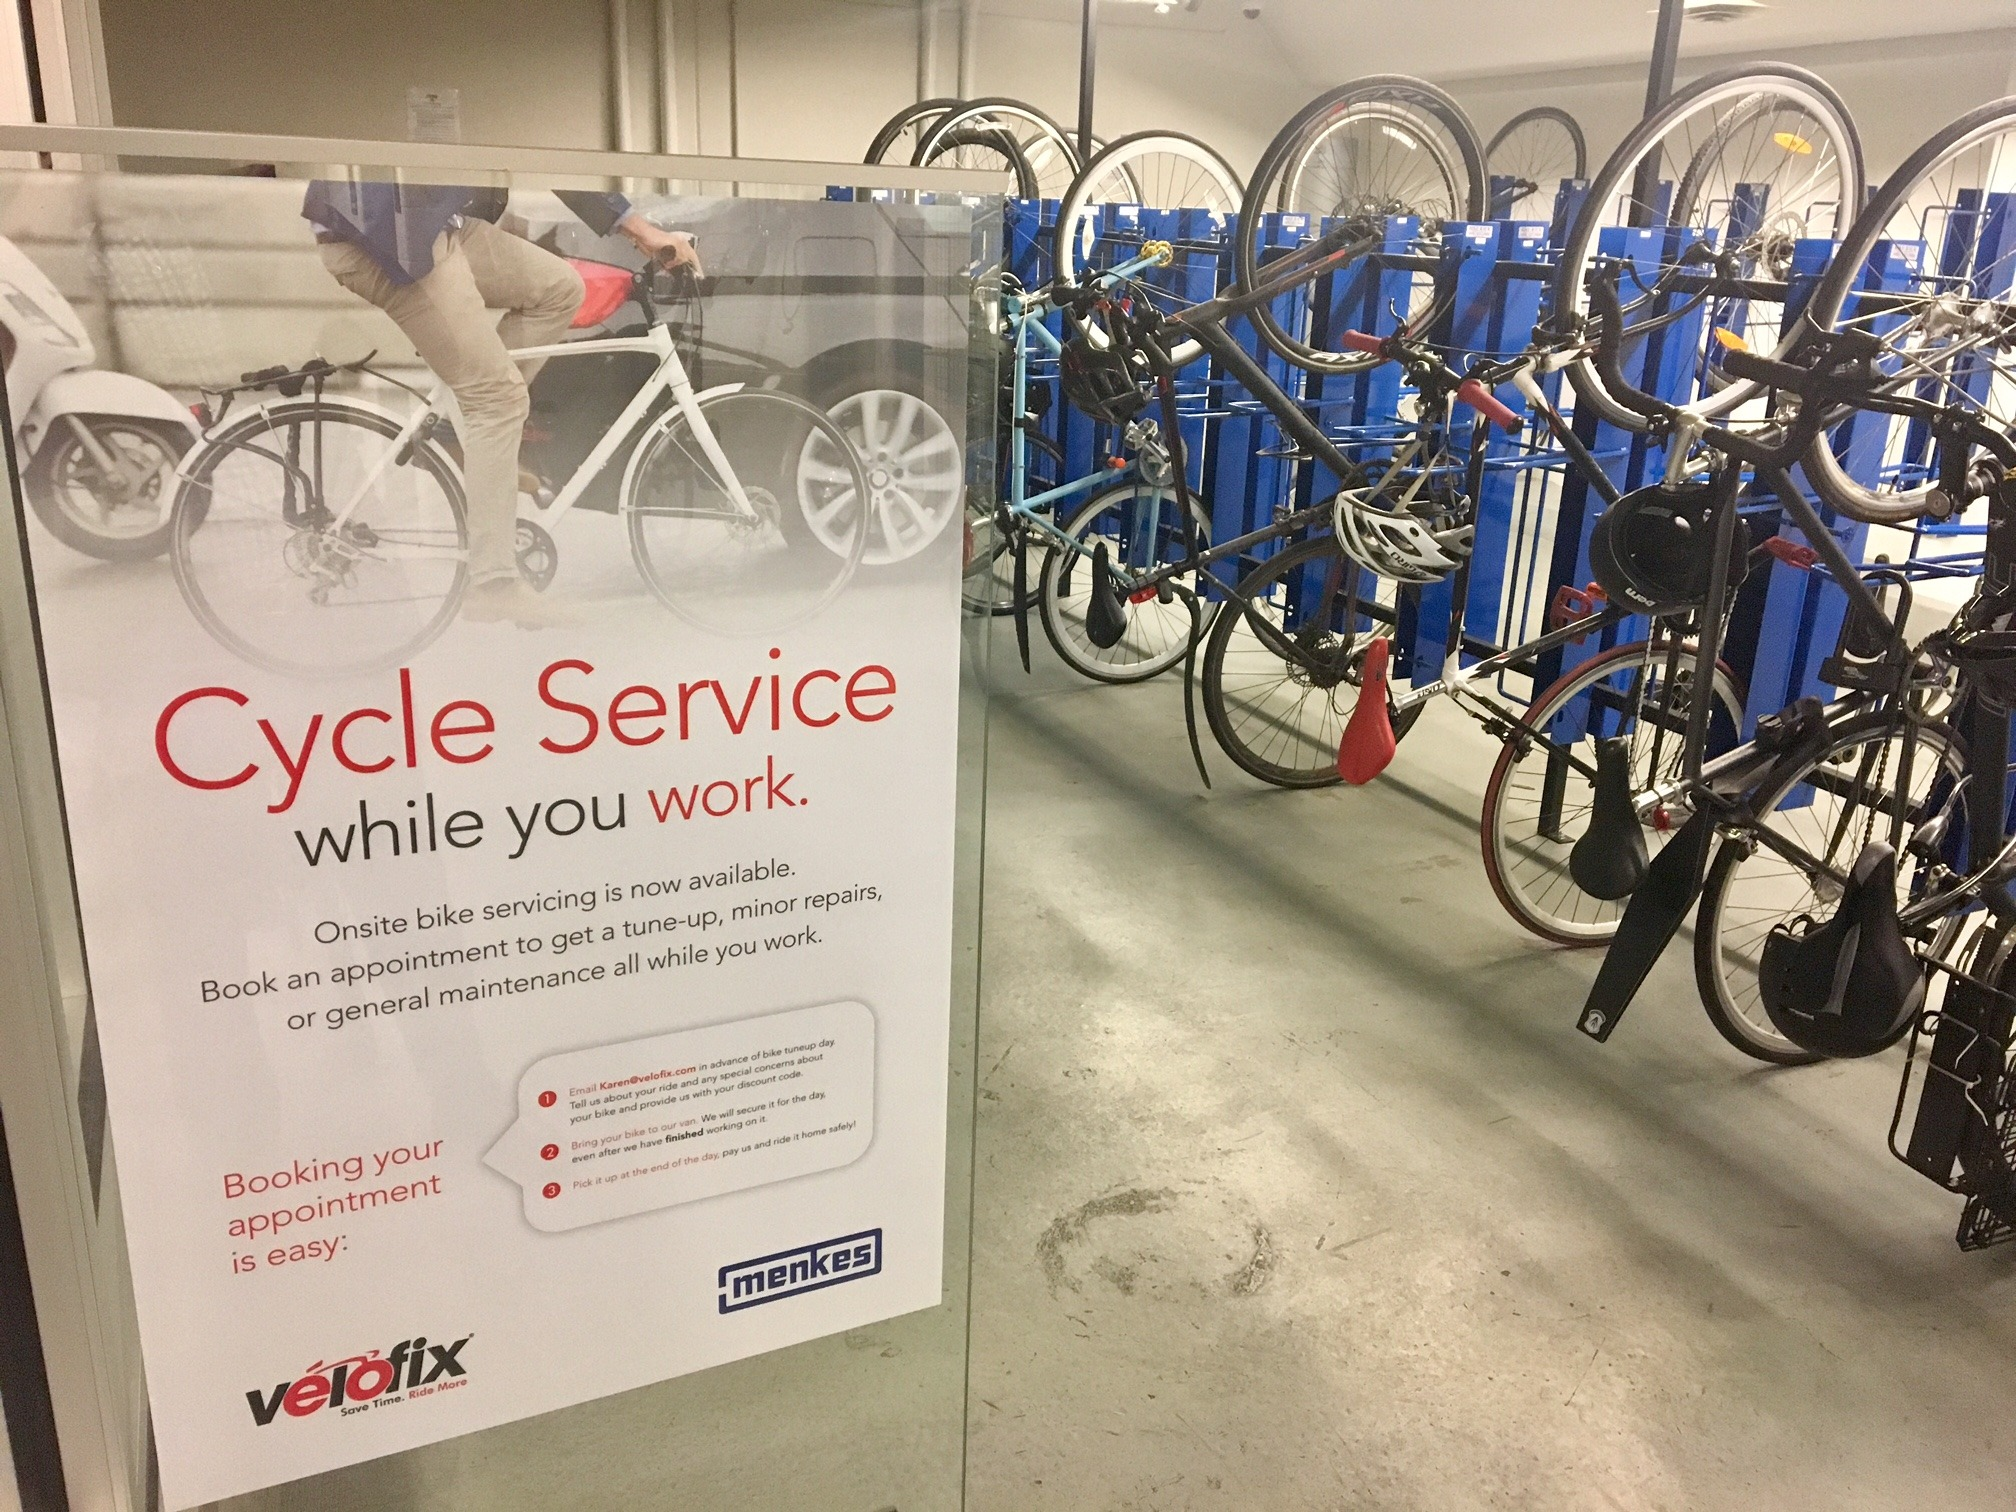 Menkes now offers onsite bike servicing, a new amenity that is part of the company's Fitwell program, encouraging an active lifestyle. Advocating for cycling is part of Menkes' priority to promote well-being. (Photo courtesy Menkes)